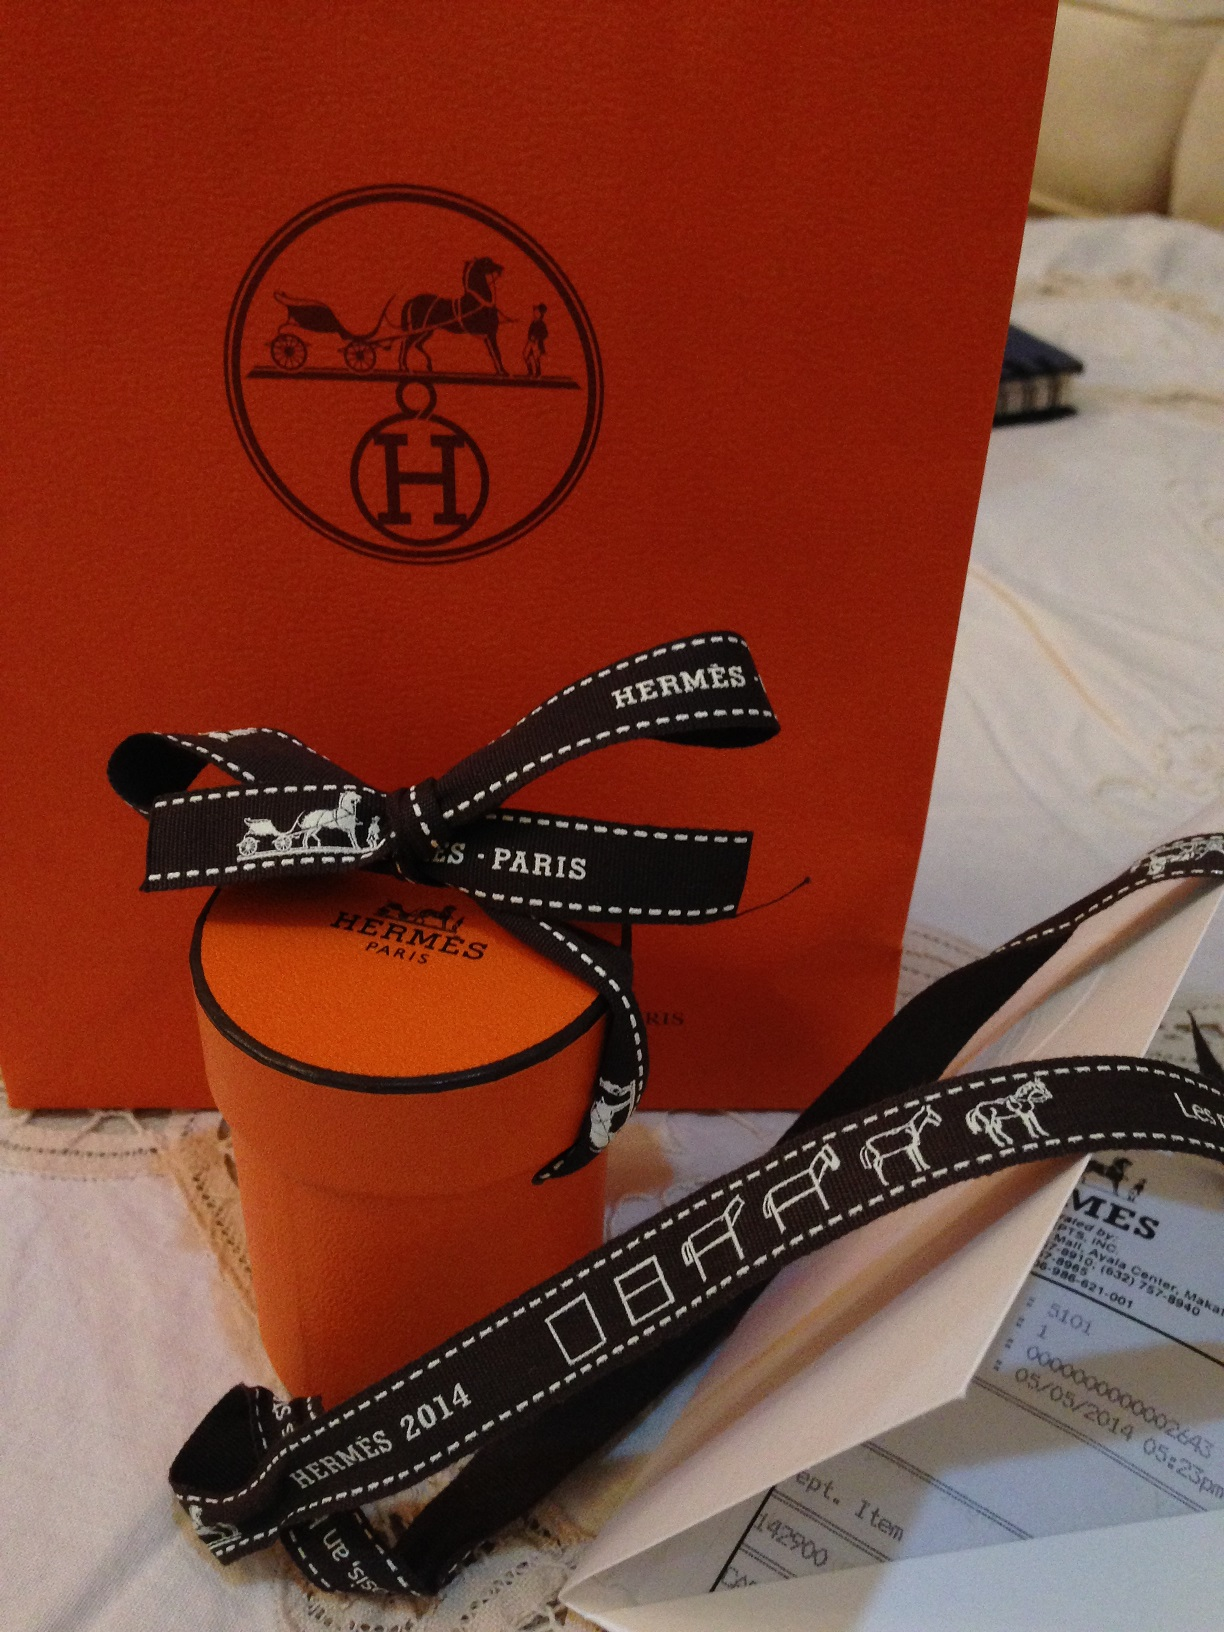 Hermes gift - Oh My Buhay